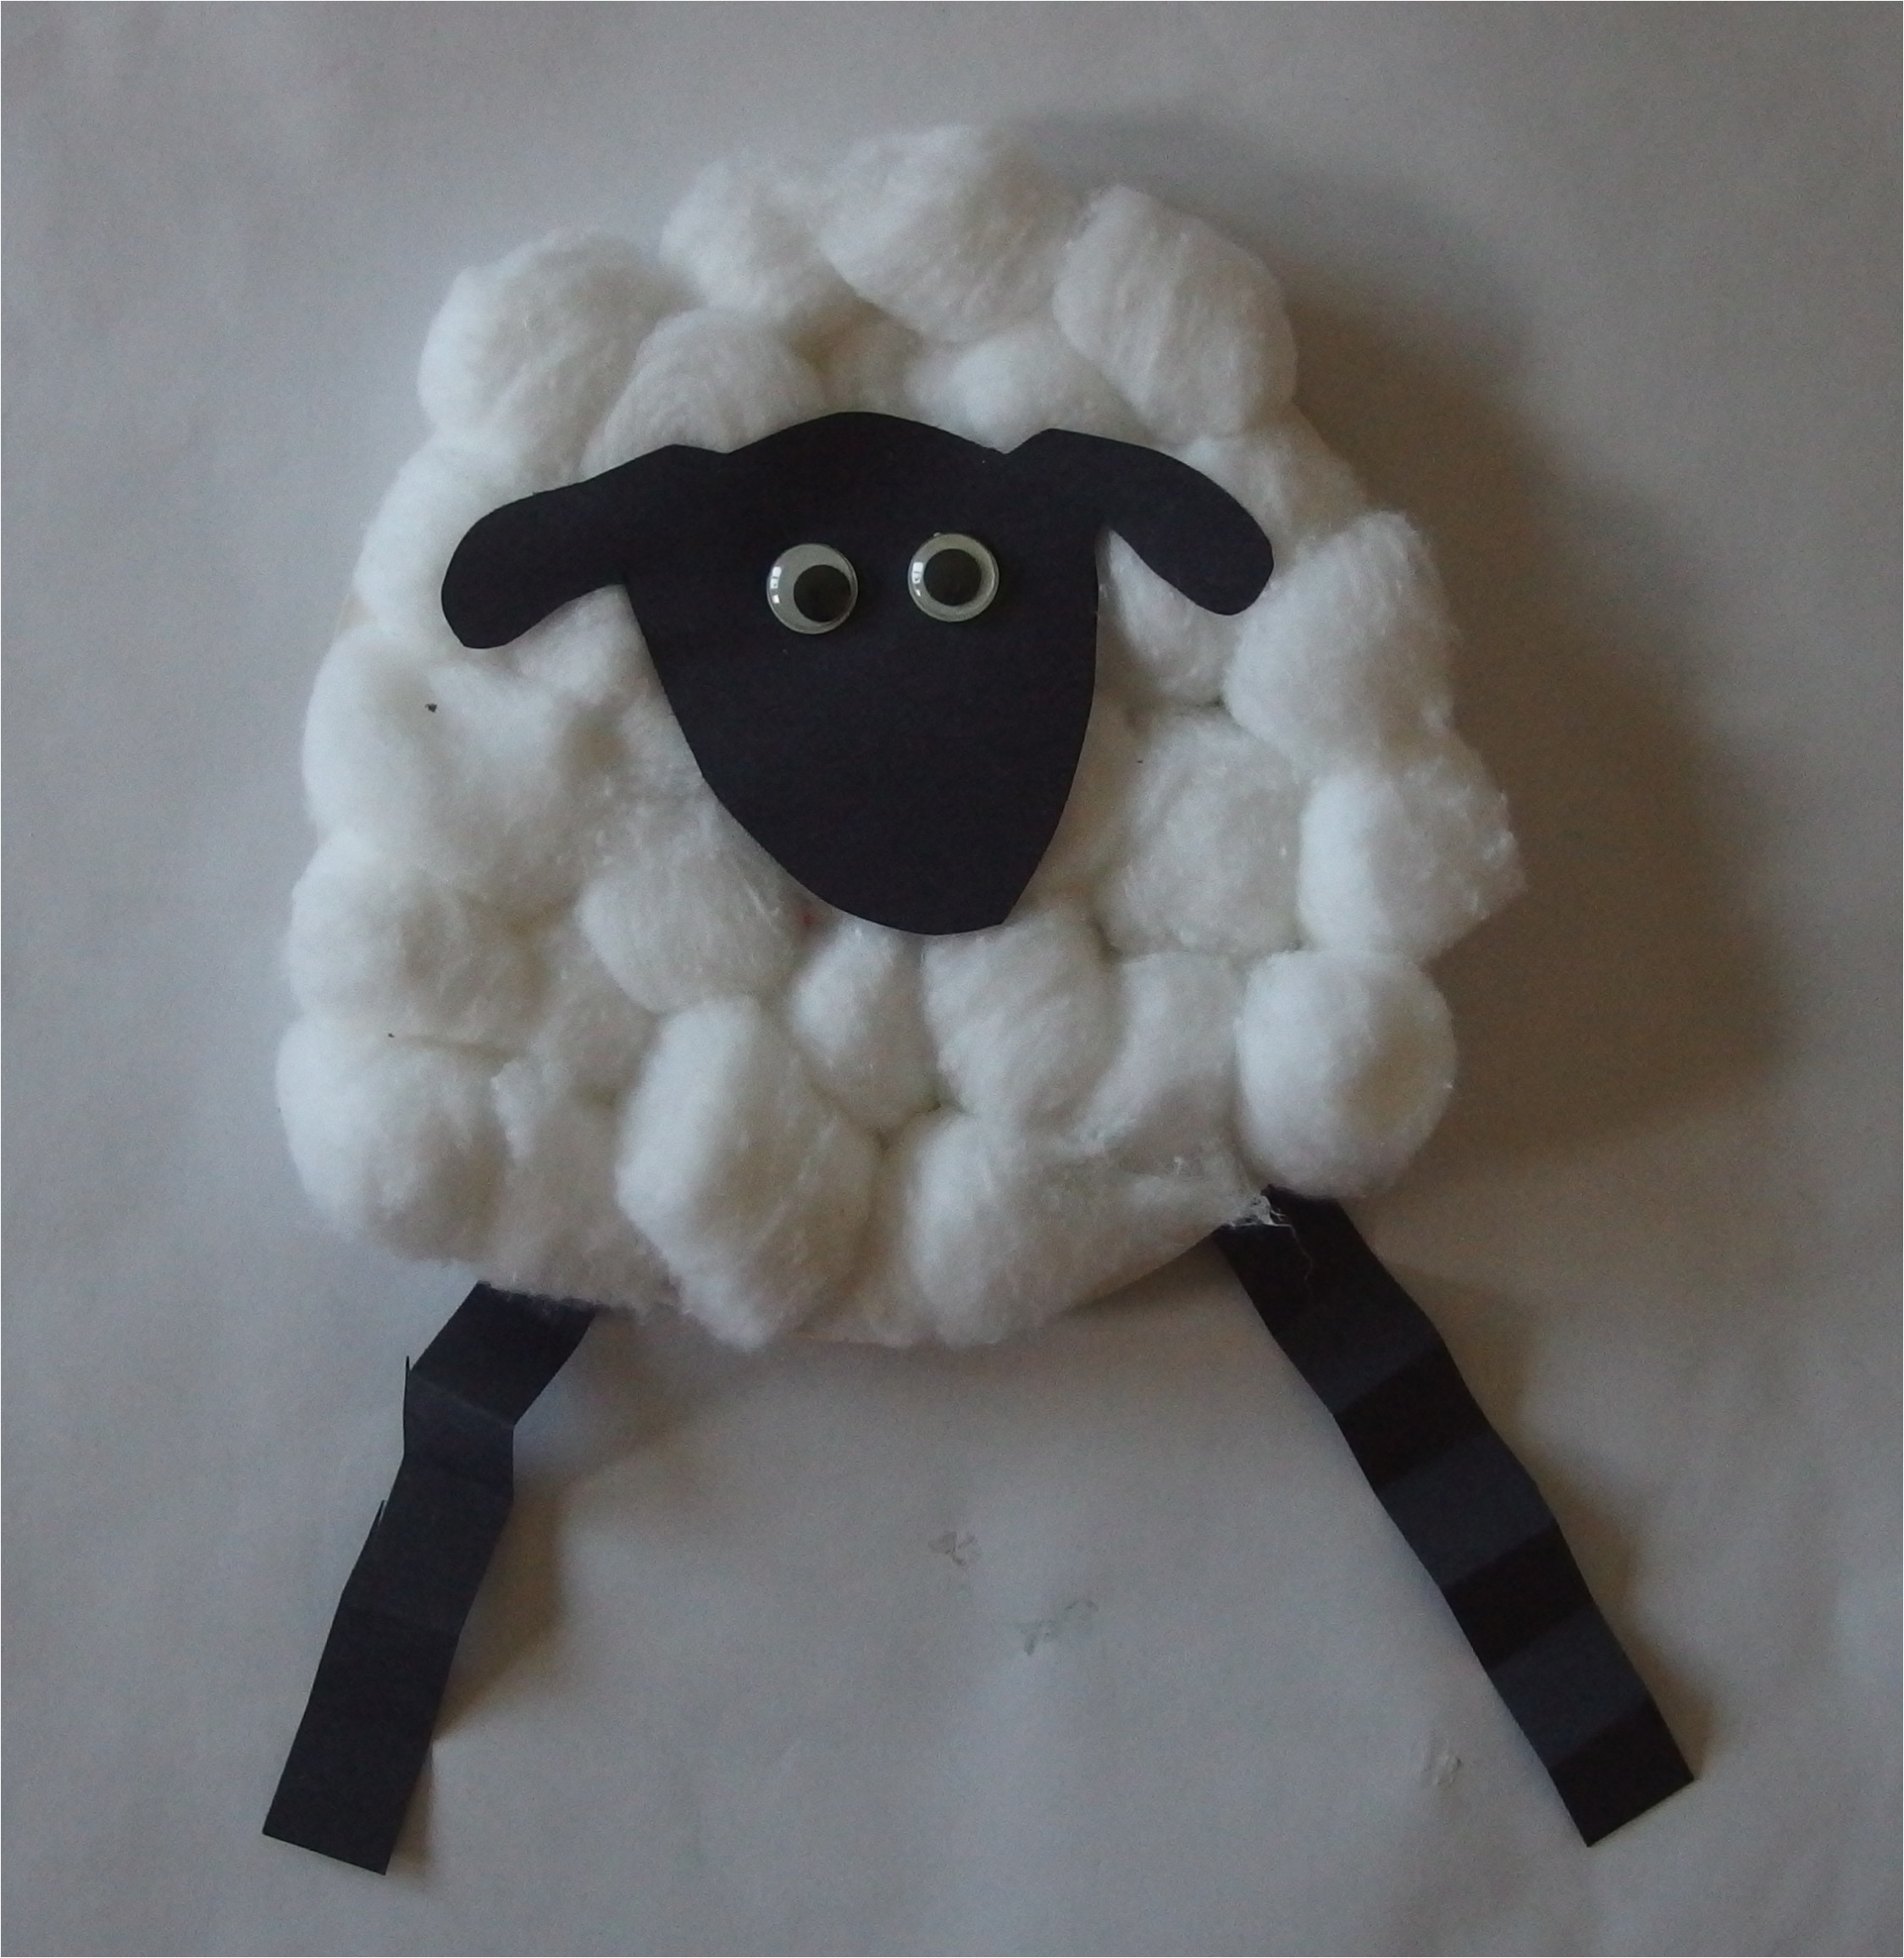 Cardboard Sheep Template Storytime Stories Knees and the Land Of Cheese